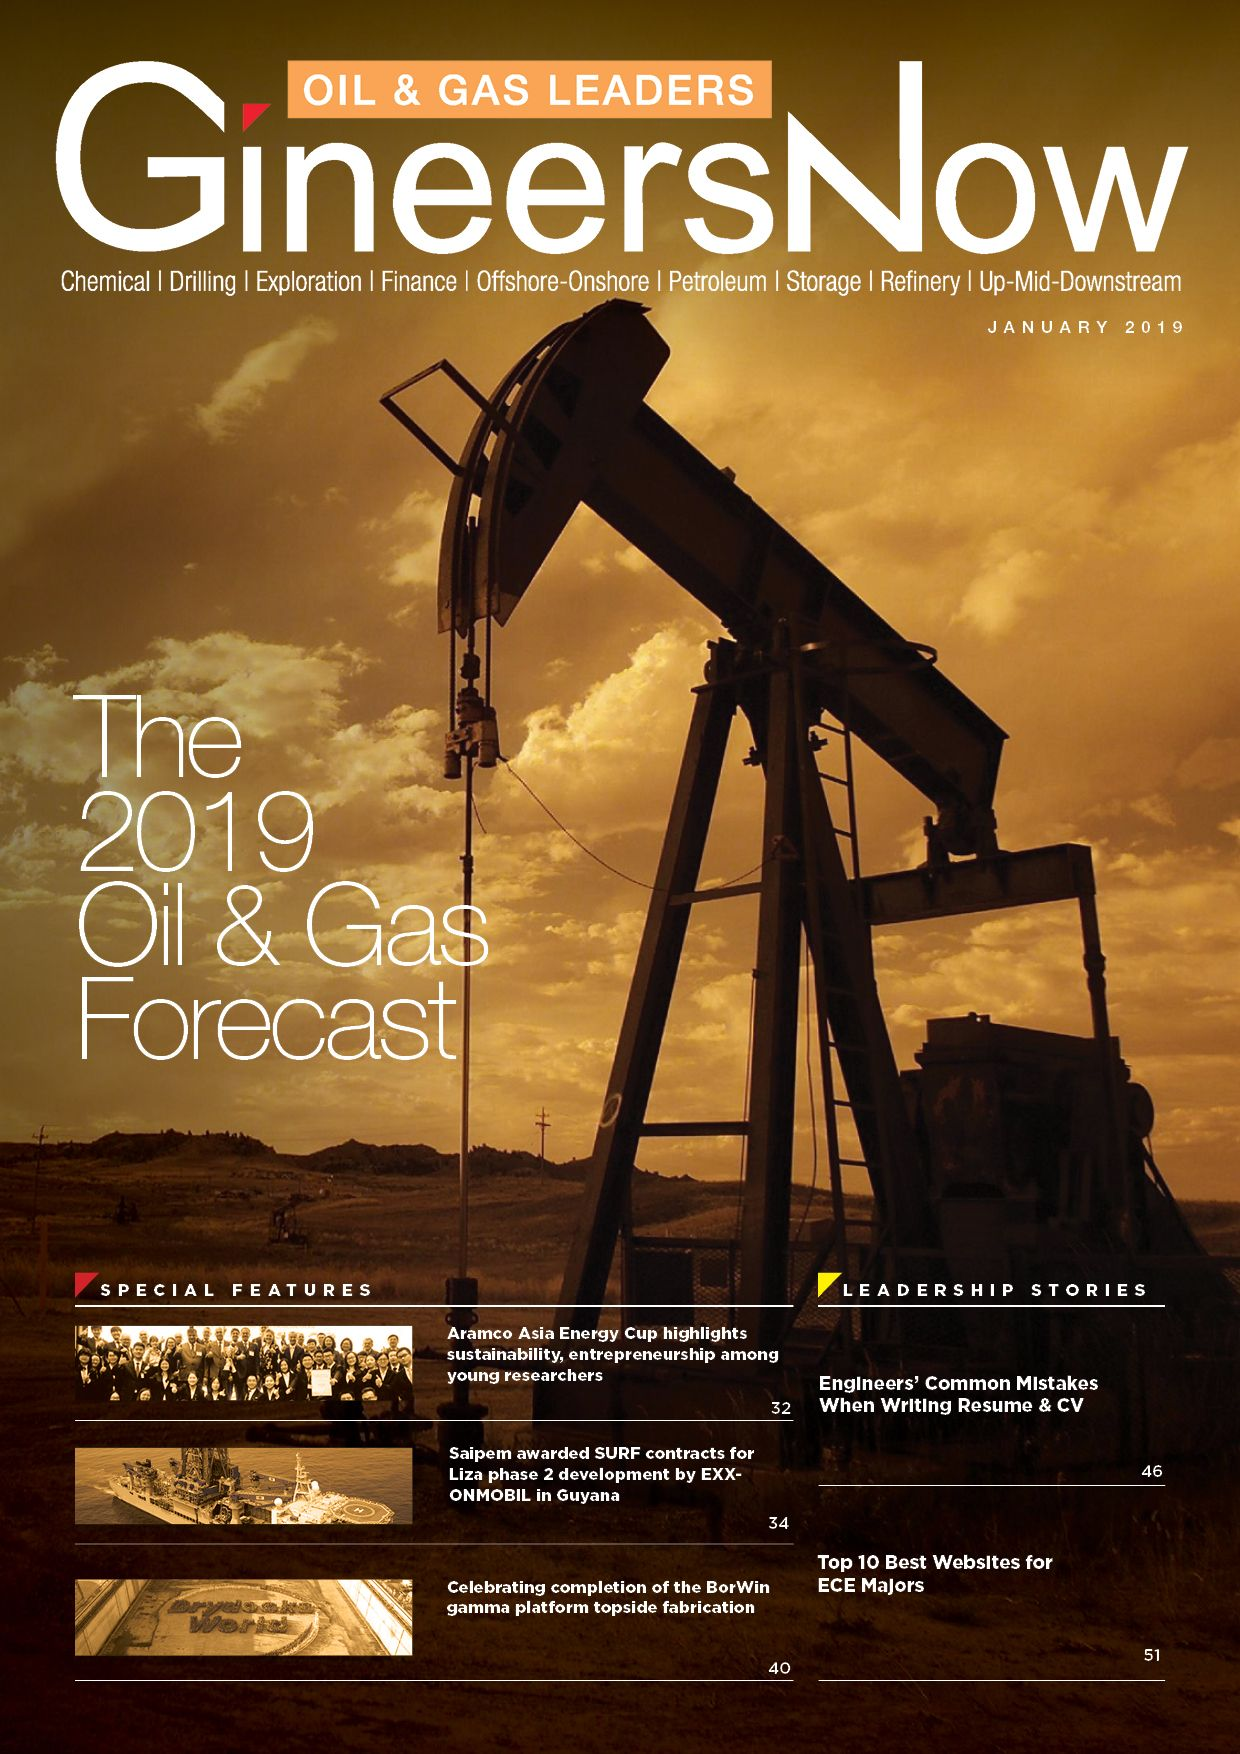 2019 Energy, Chemicals, Oil and Gas Forecast